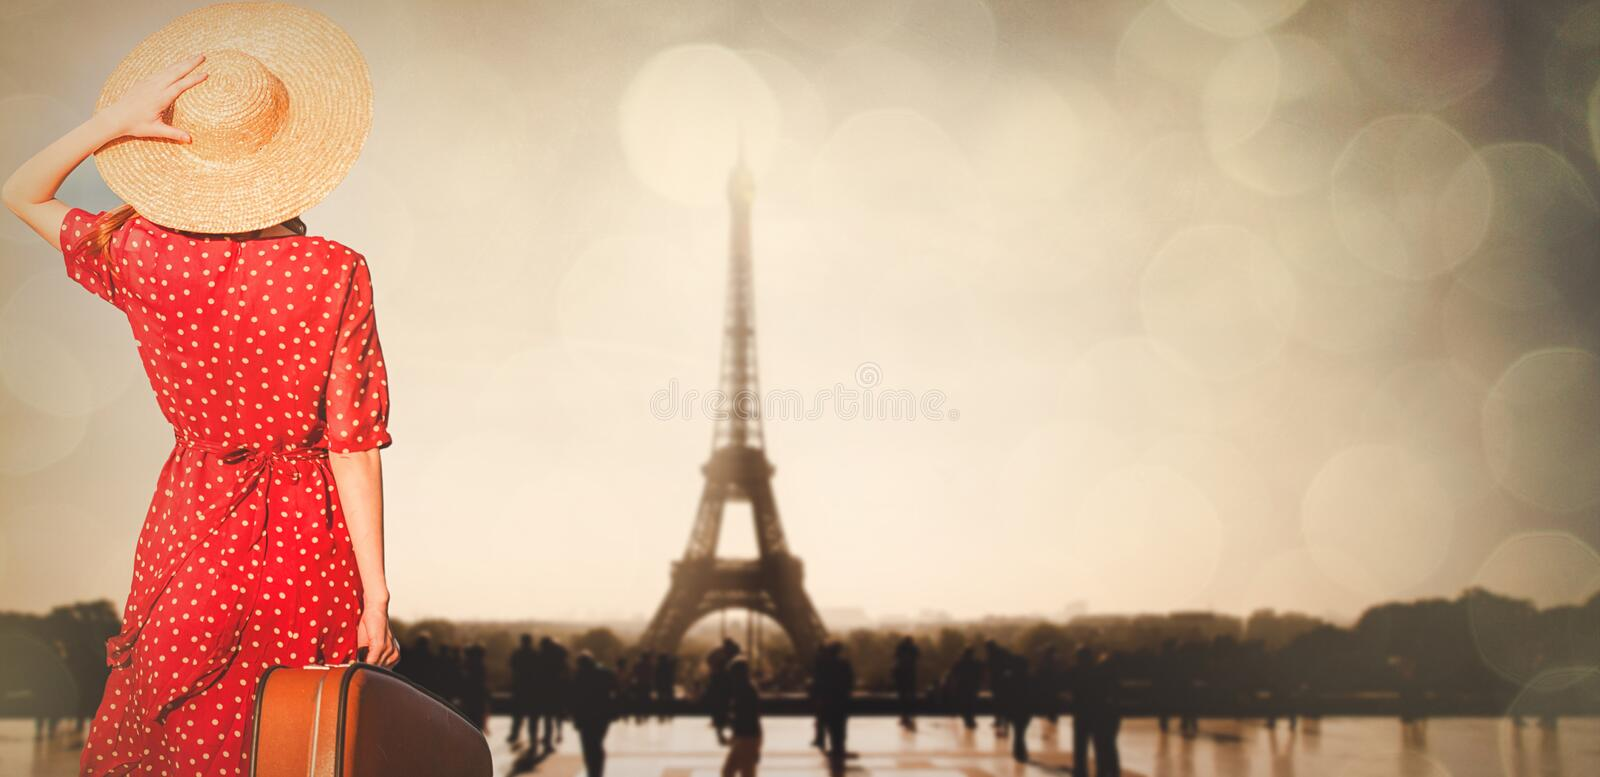 Girl with suitcase in Paris royalty free stock photography